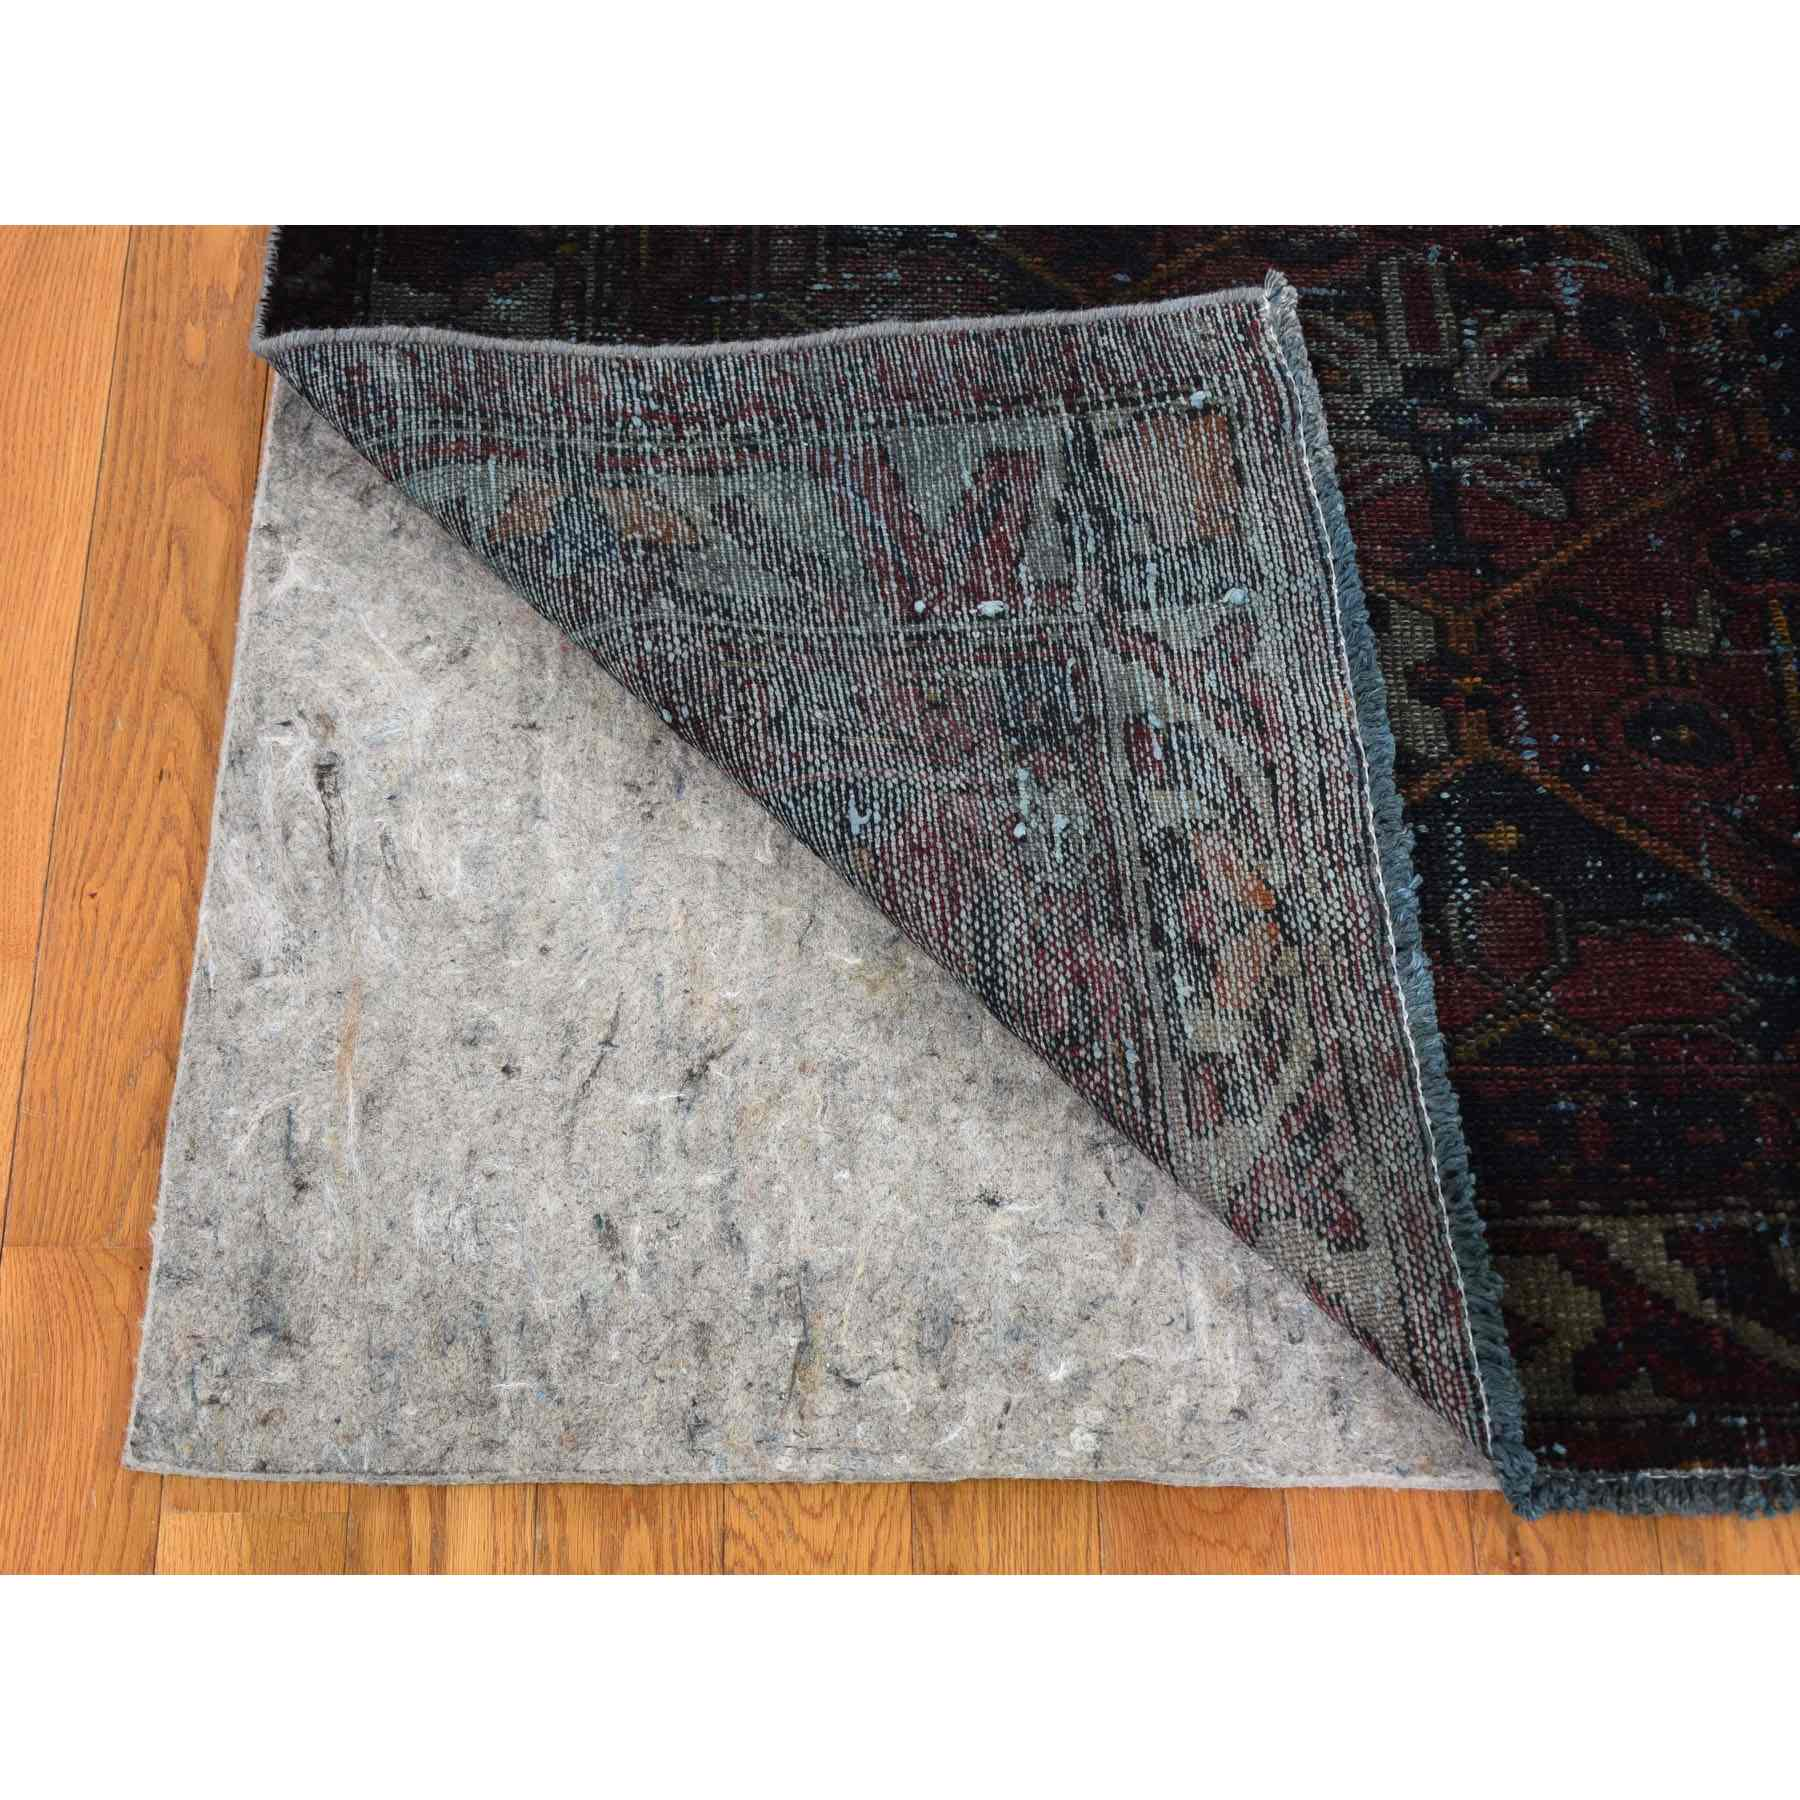 Overdyed-Vintage-Hand-Knotted-Rug-295935